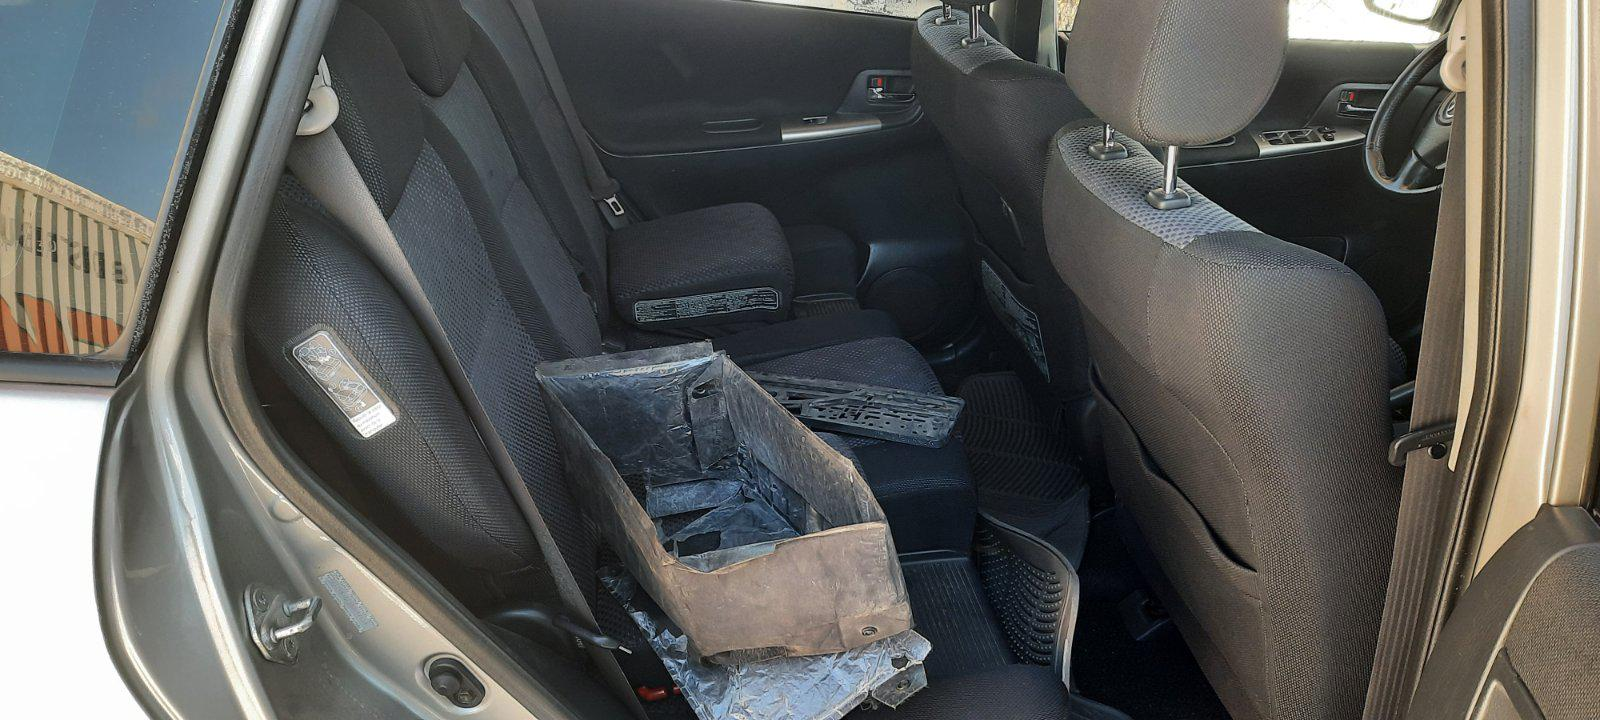 Used Car Parts Foto 9 Toyota COROLLA VERSO 2003 2.0 Mechanical Minivan 4/5 d. Grey 2021-2-18 A6058